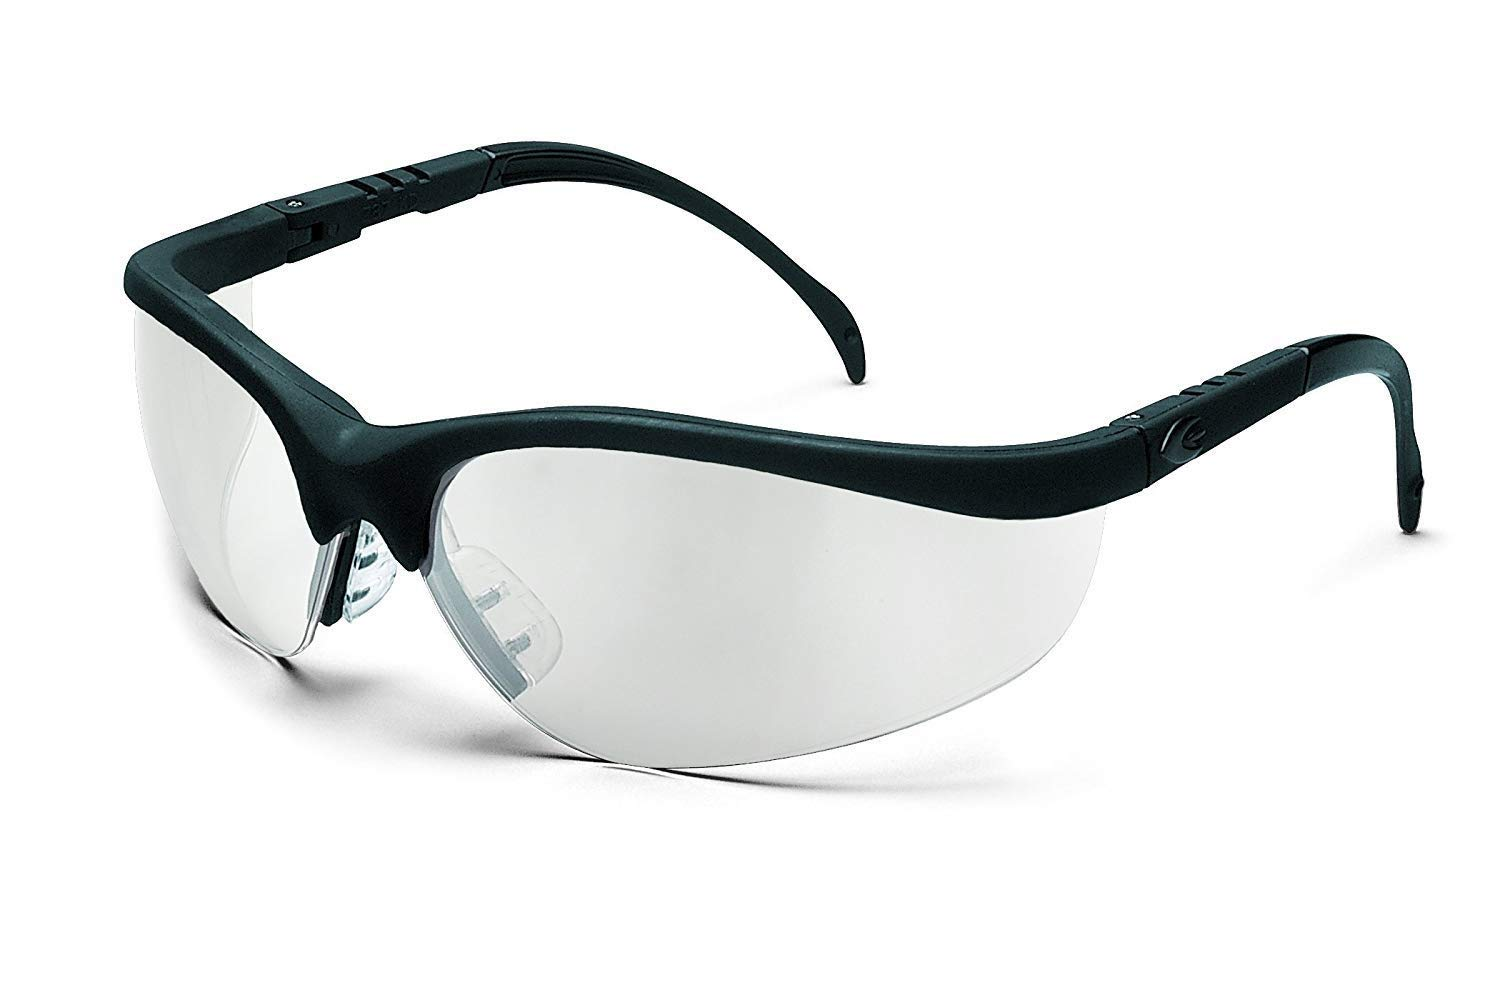 d790a7aec49e Get Quotations · MCR Safety KD119 Klondike Safety Glasses